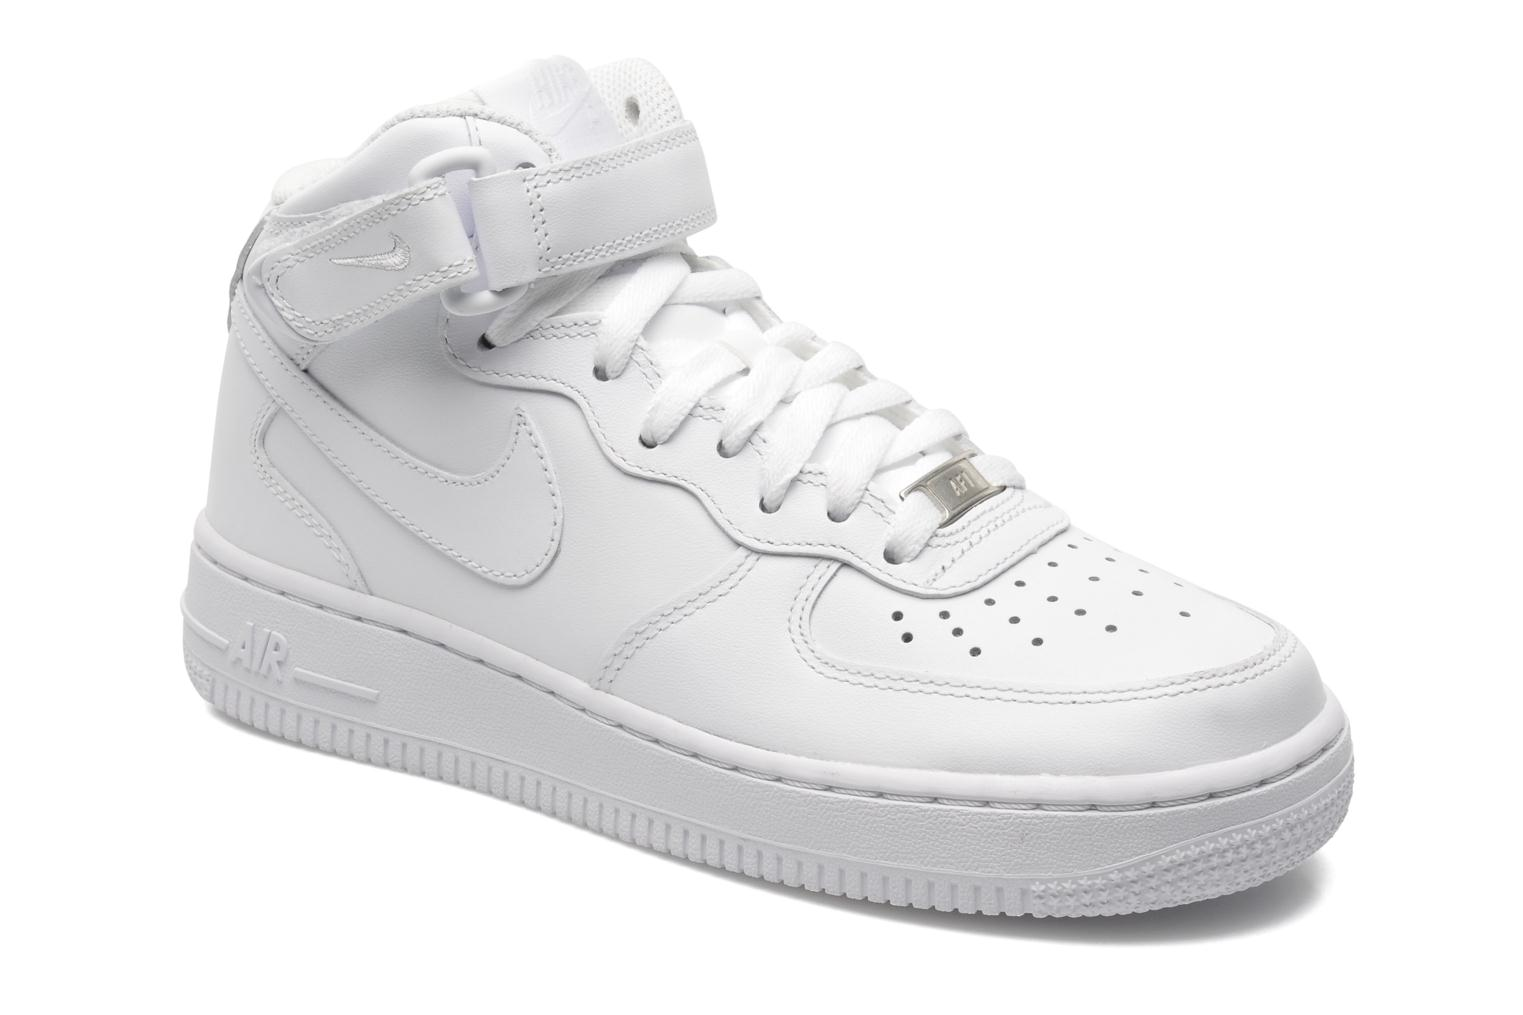 Wmns Air Force 1 Mid '07 Le by Nike Blanco